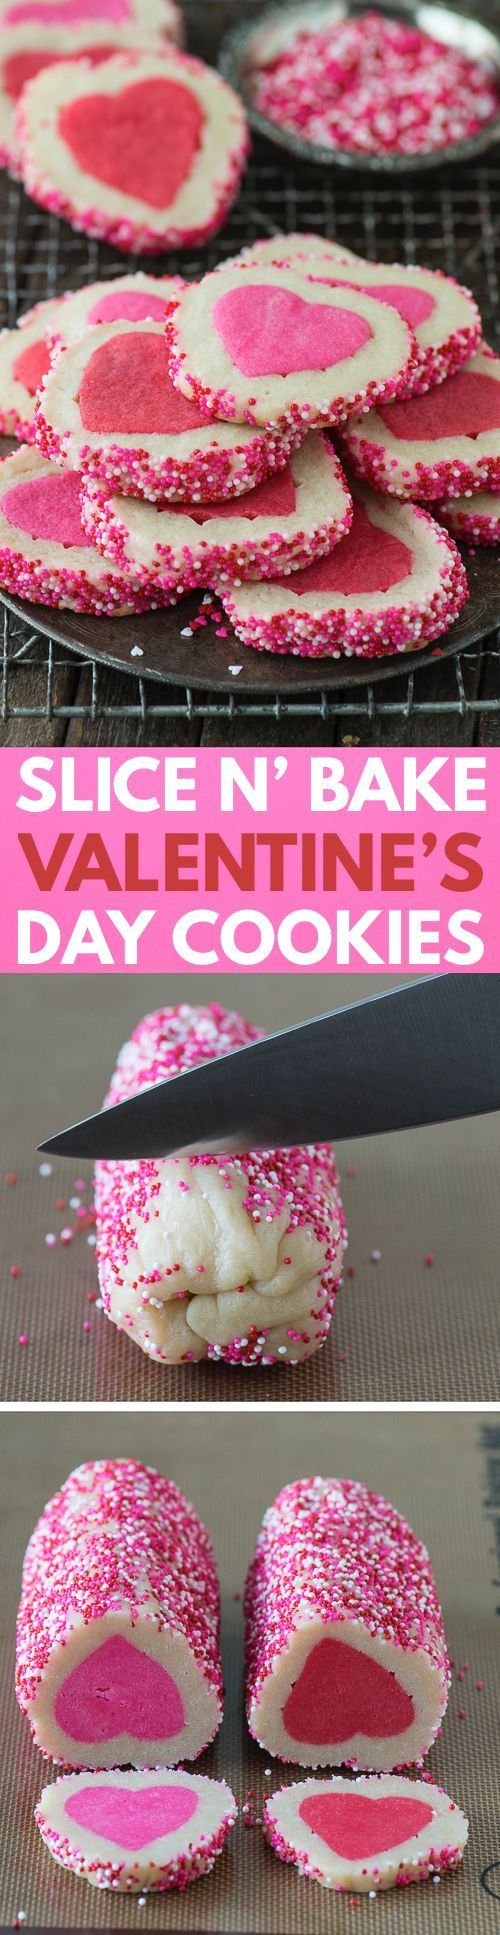 Homemade Valentine's Day Slice N' Bake Cookies with a step by step video!: